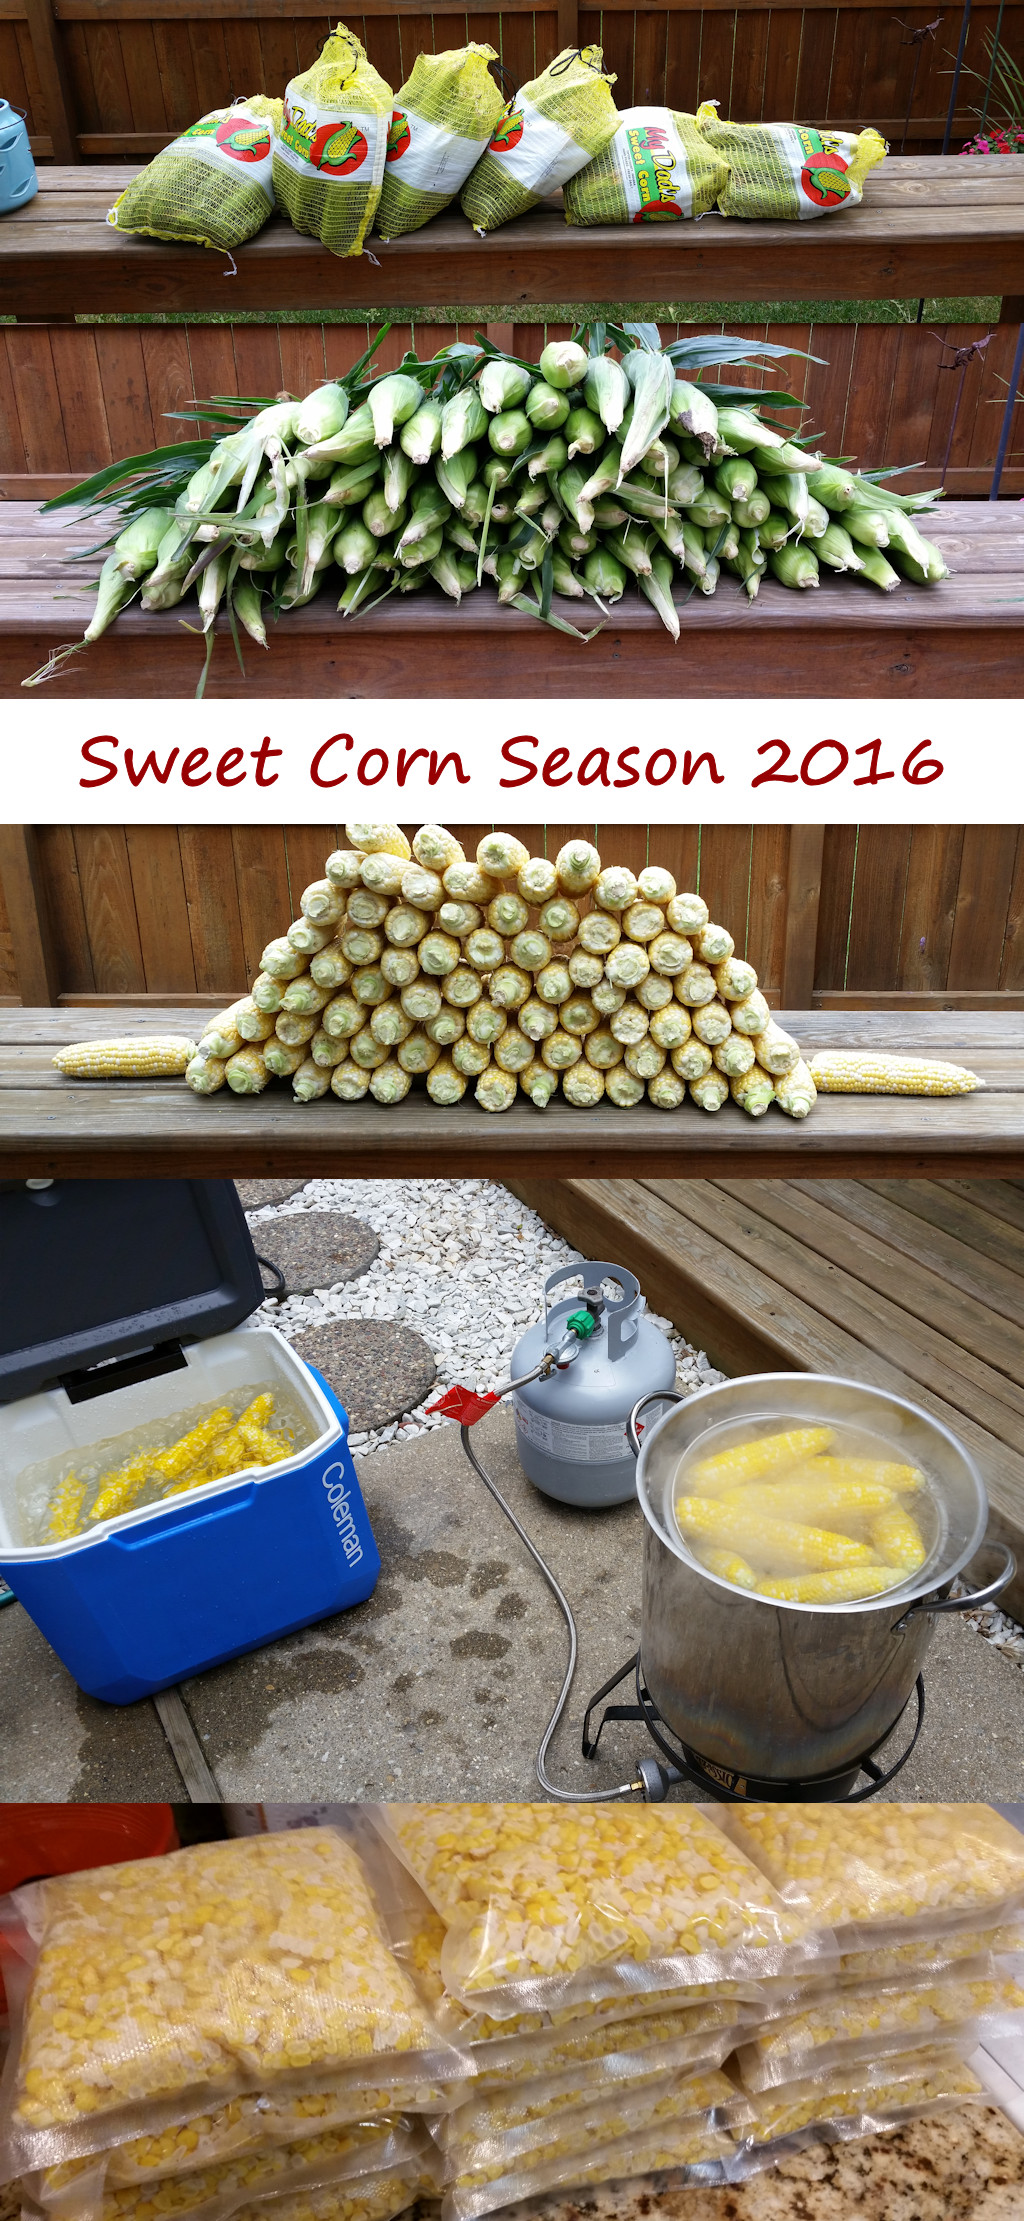 Sweet Corn Season 2016